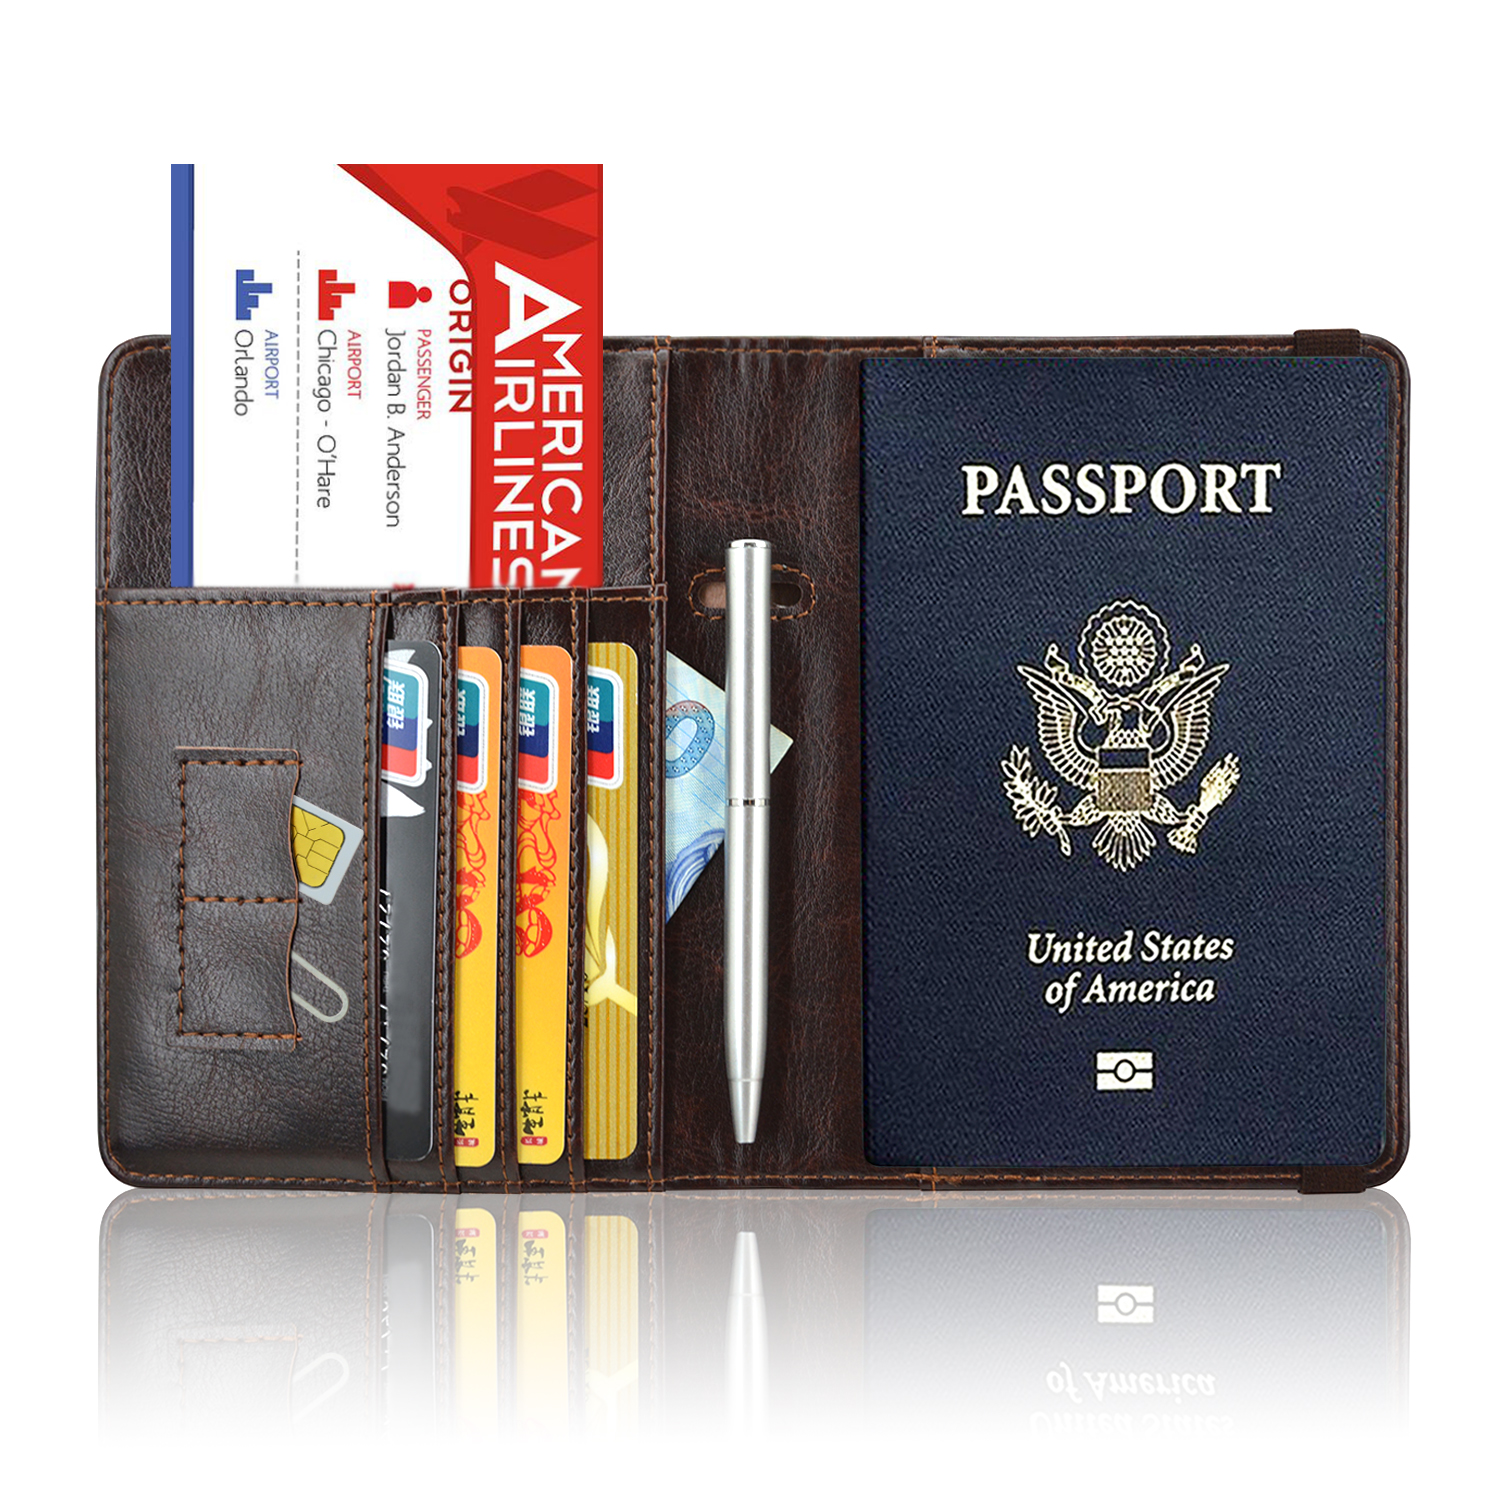 passport holder (38)